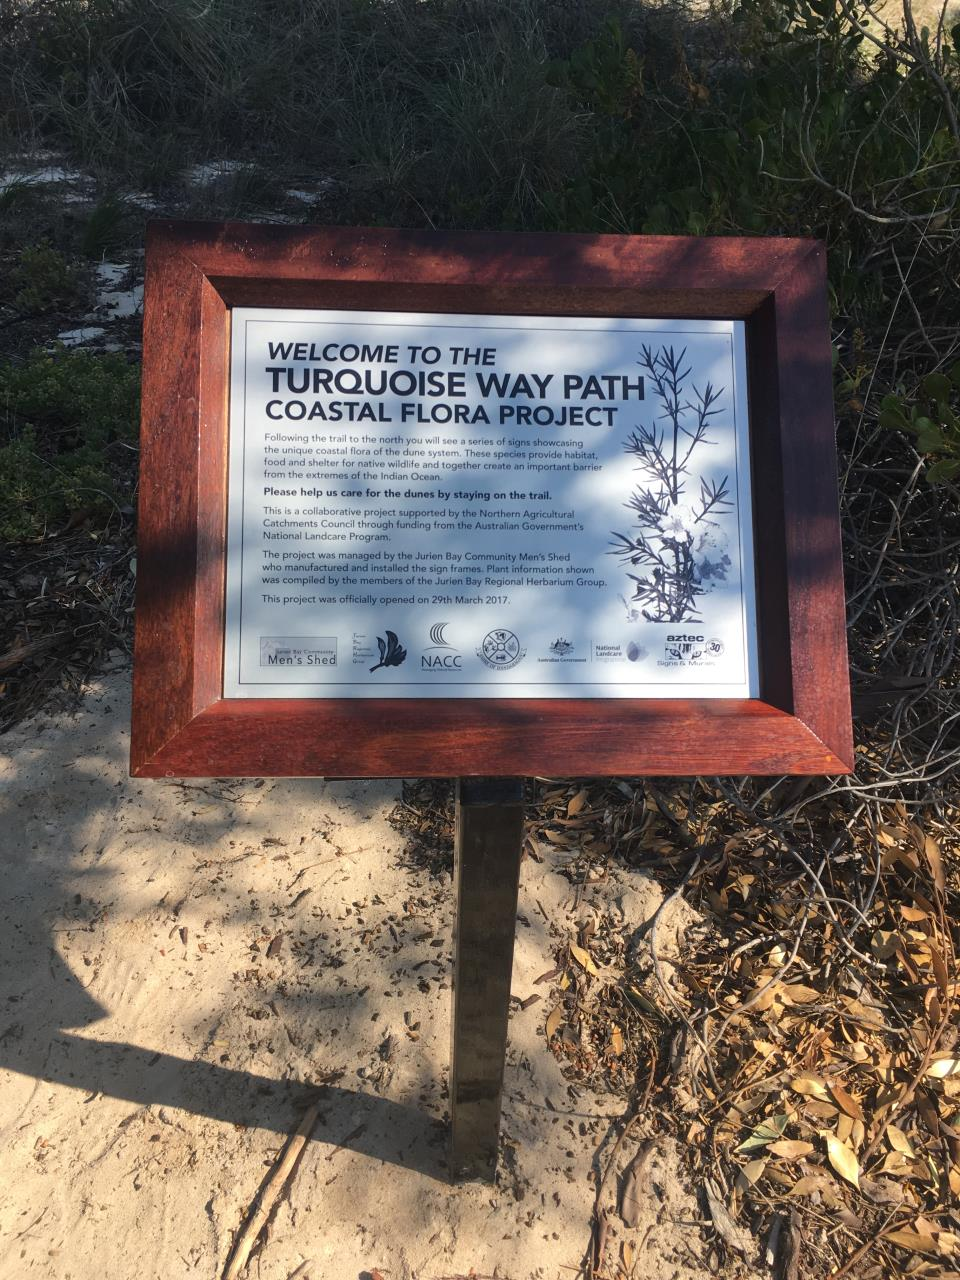 TURQUOISE WAY PATH FLORA INTERPRETATION TRAIL OPENED